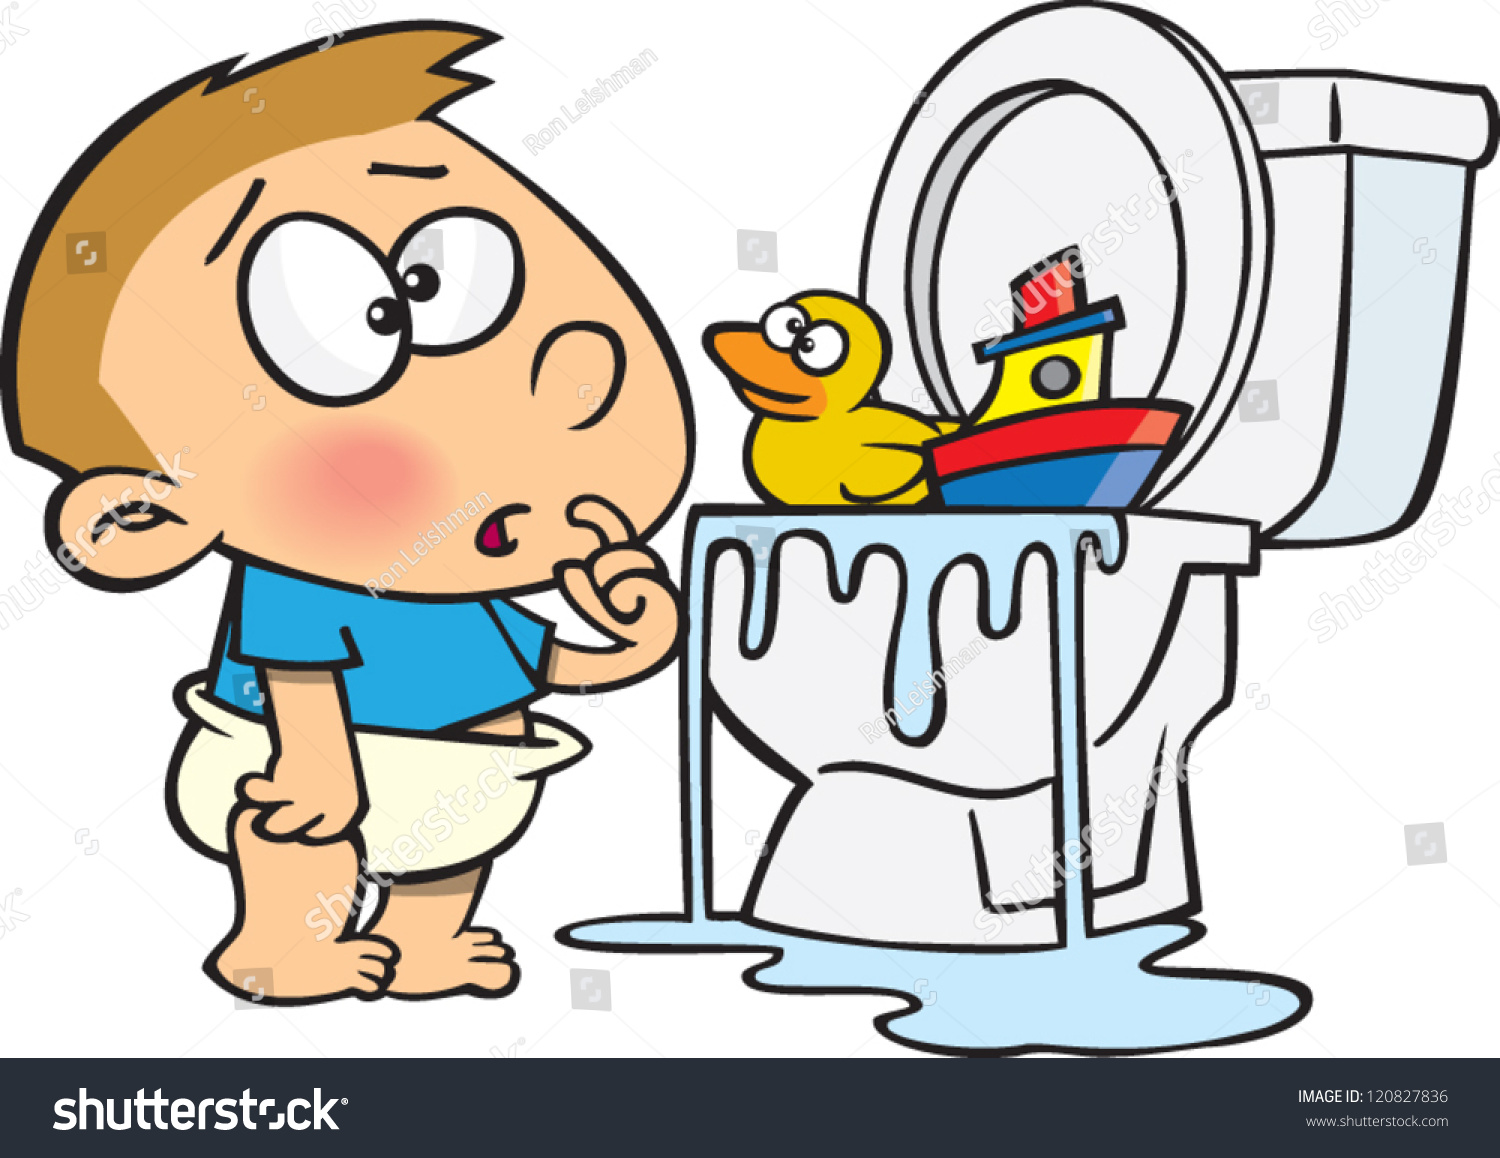 clipart overflowing toilet - photo #16